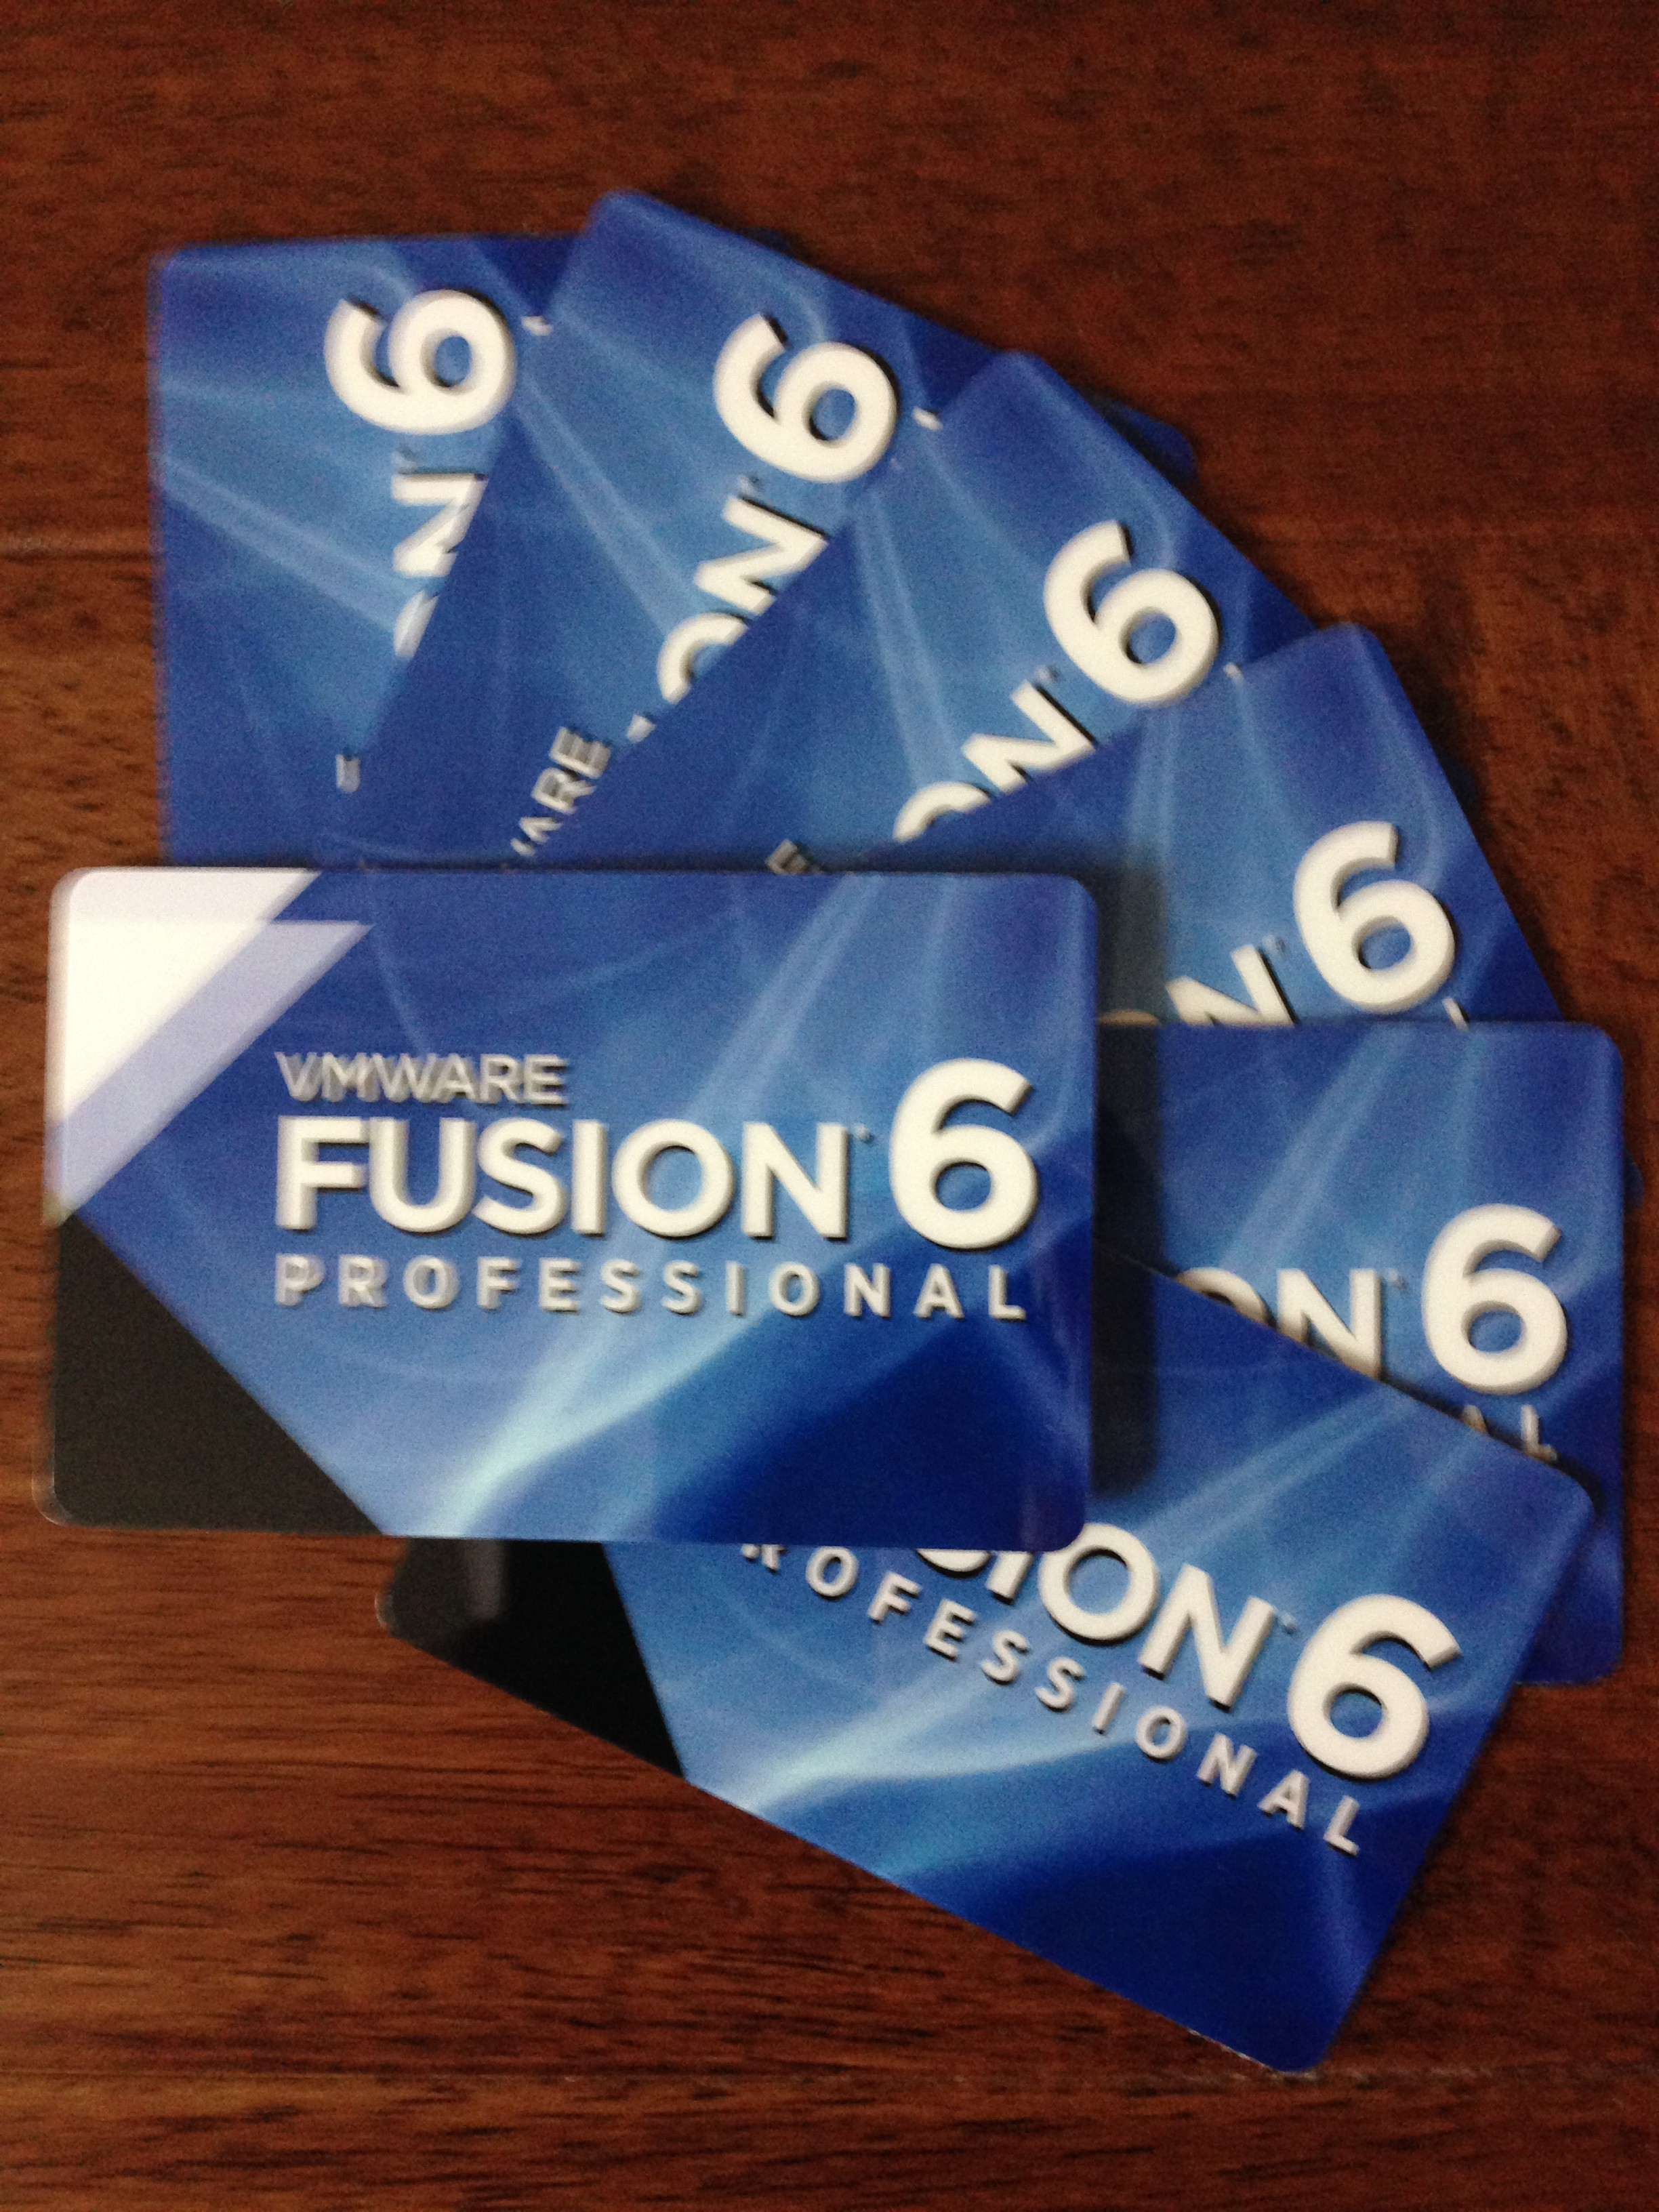 Want a free VMware Fusion 6 Professional License?